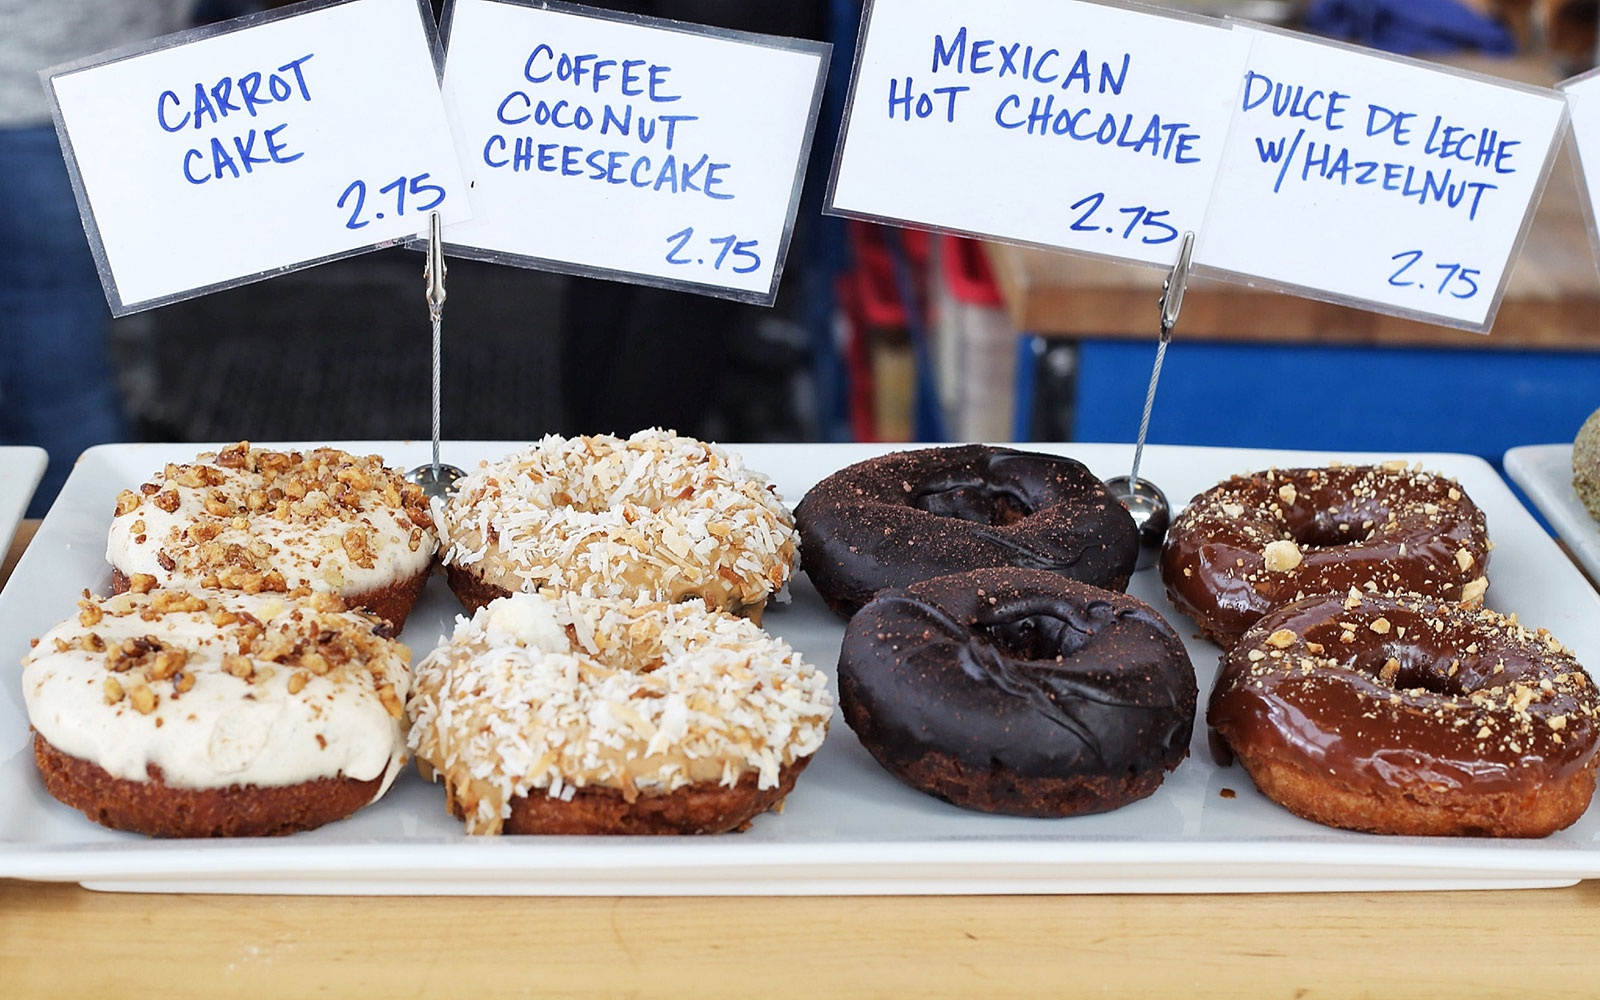 Blue Star Donuts in Los Angeles, California